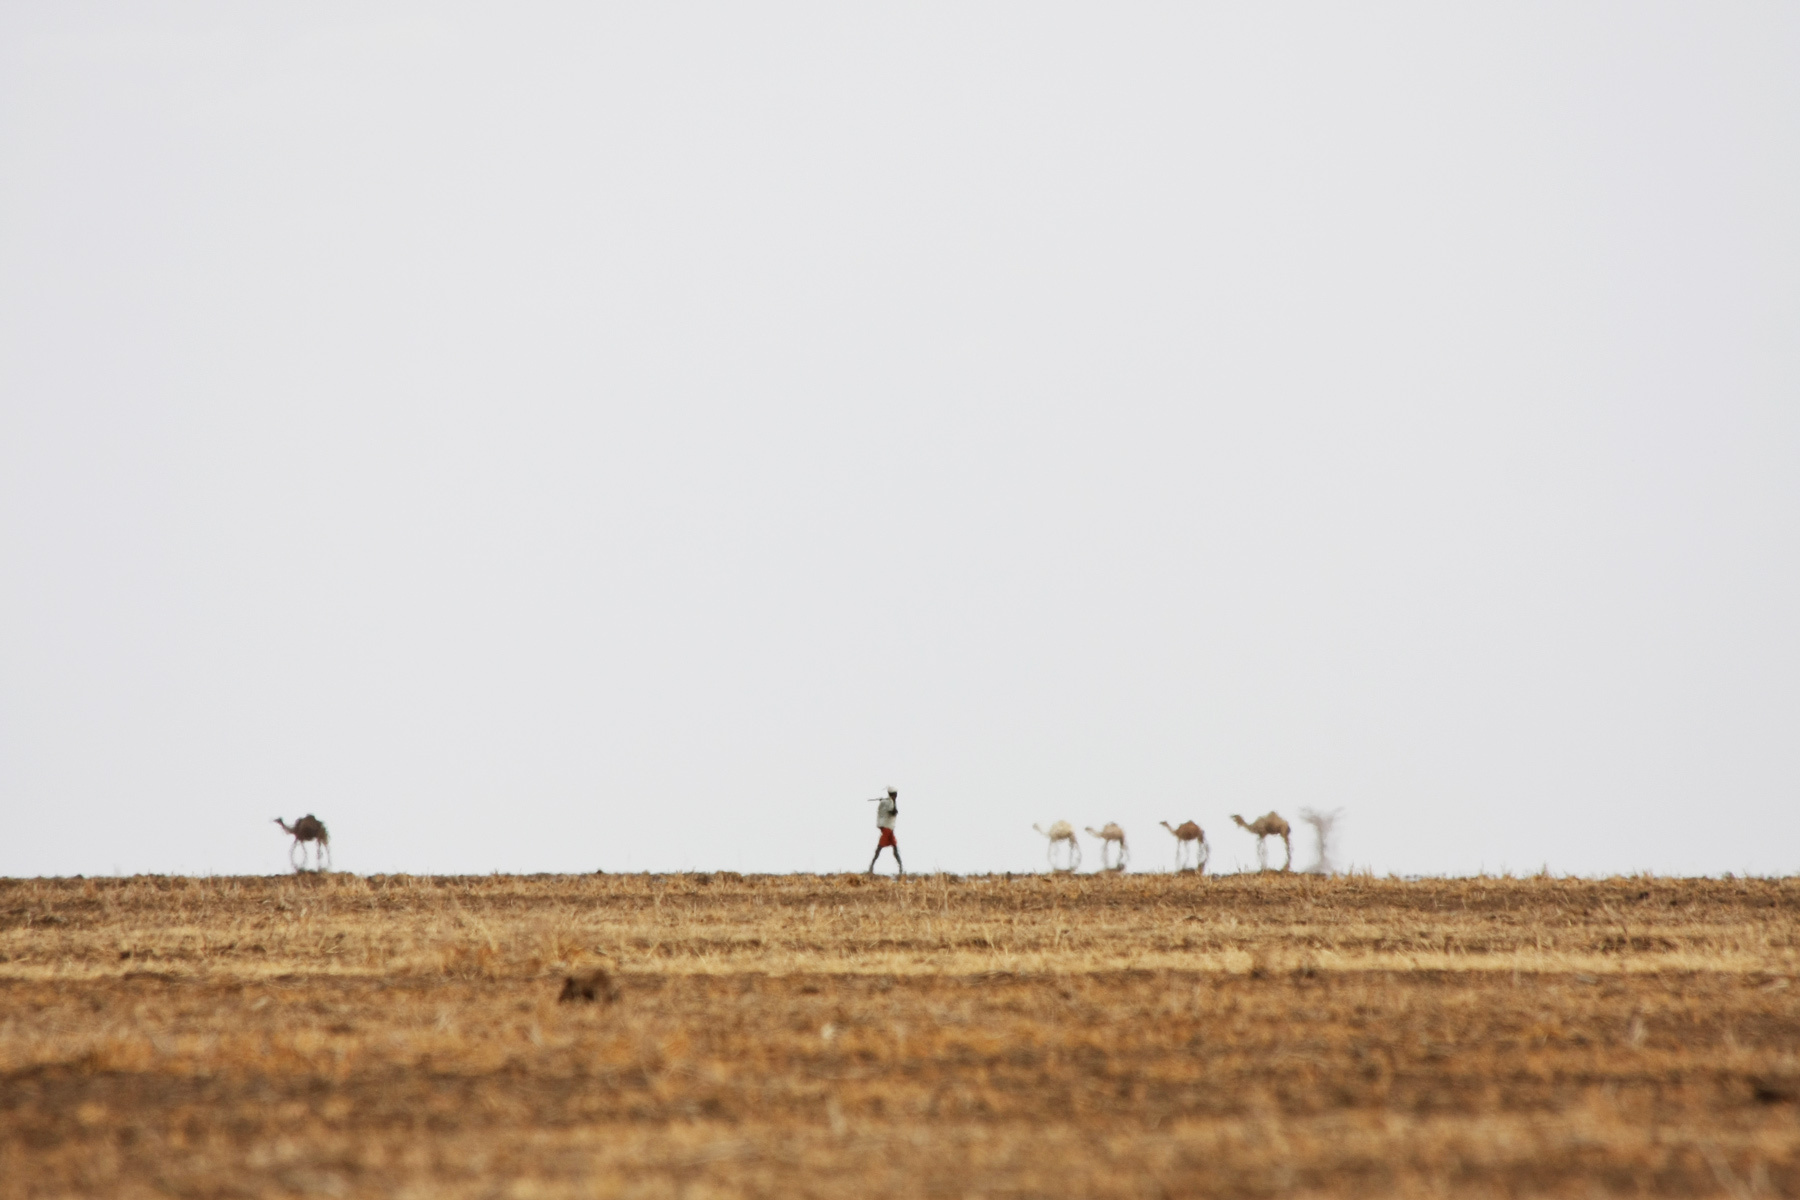 Man and camels on the horizon behind a mirage in the Chalbi desert.